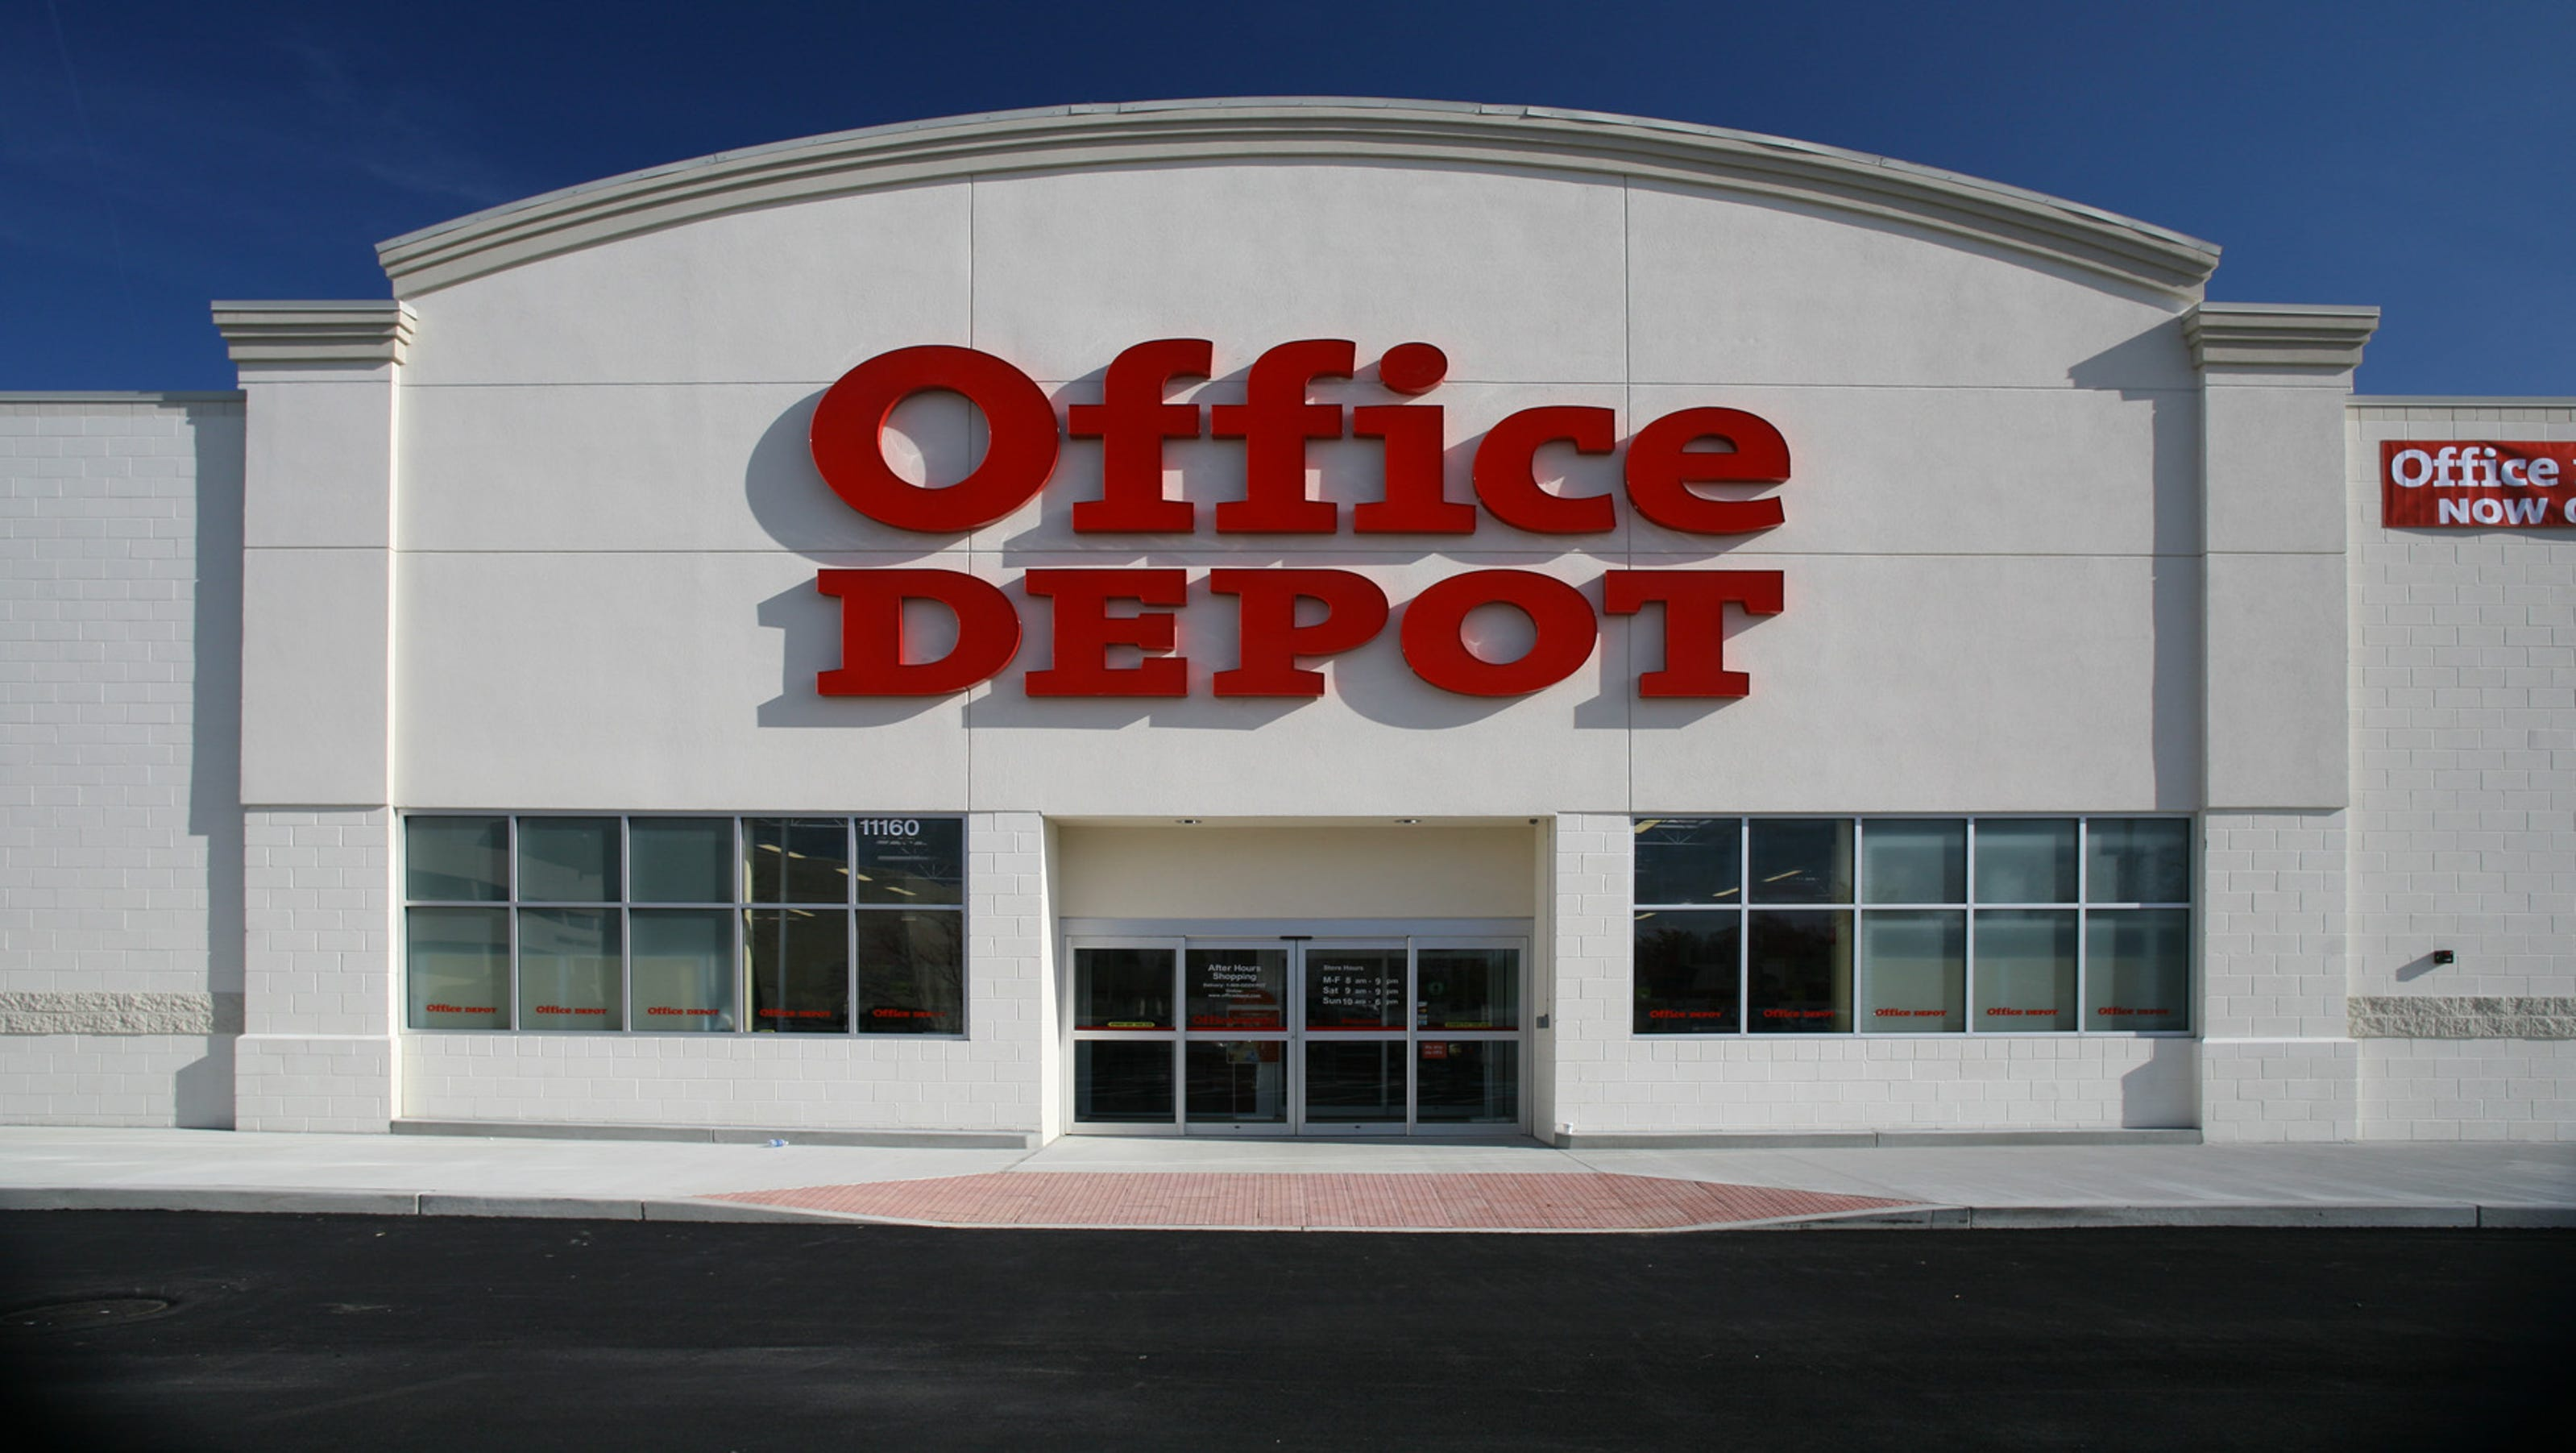 Office Depot To Close at Least 400 Stores